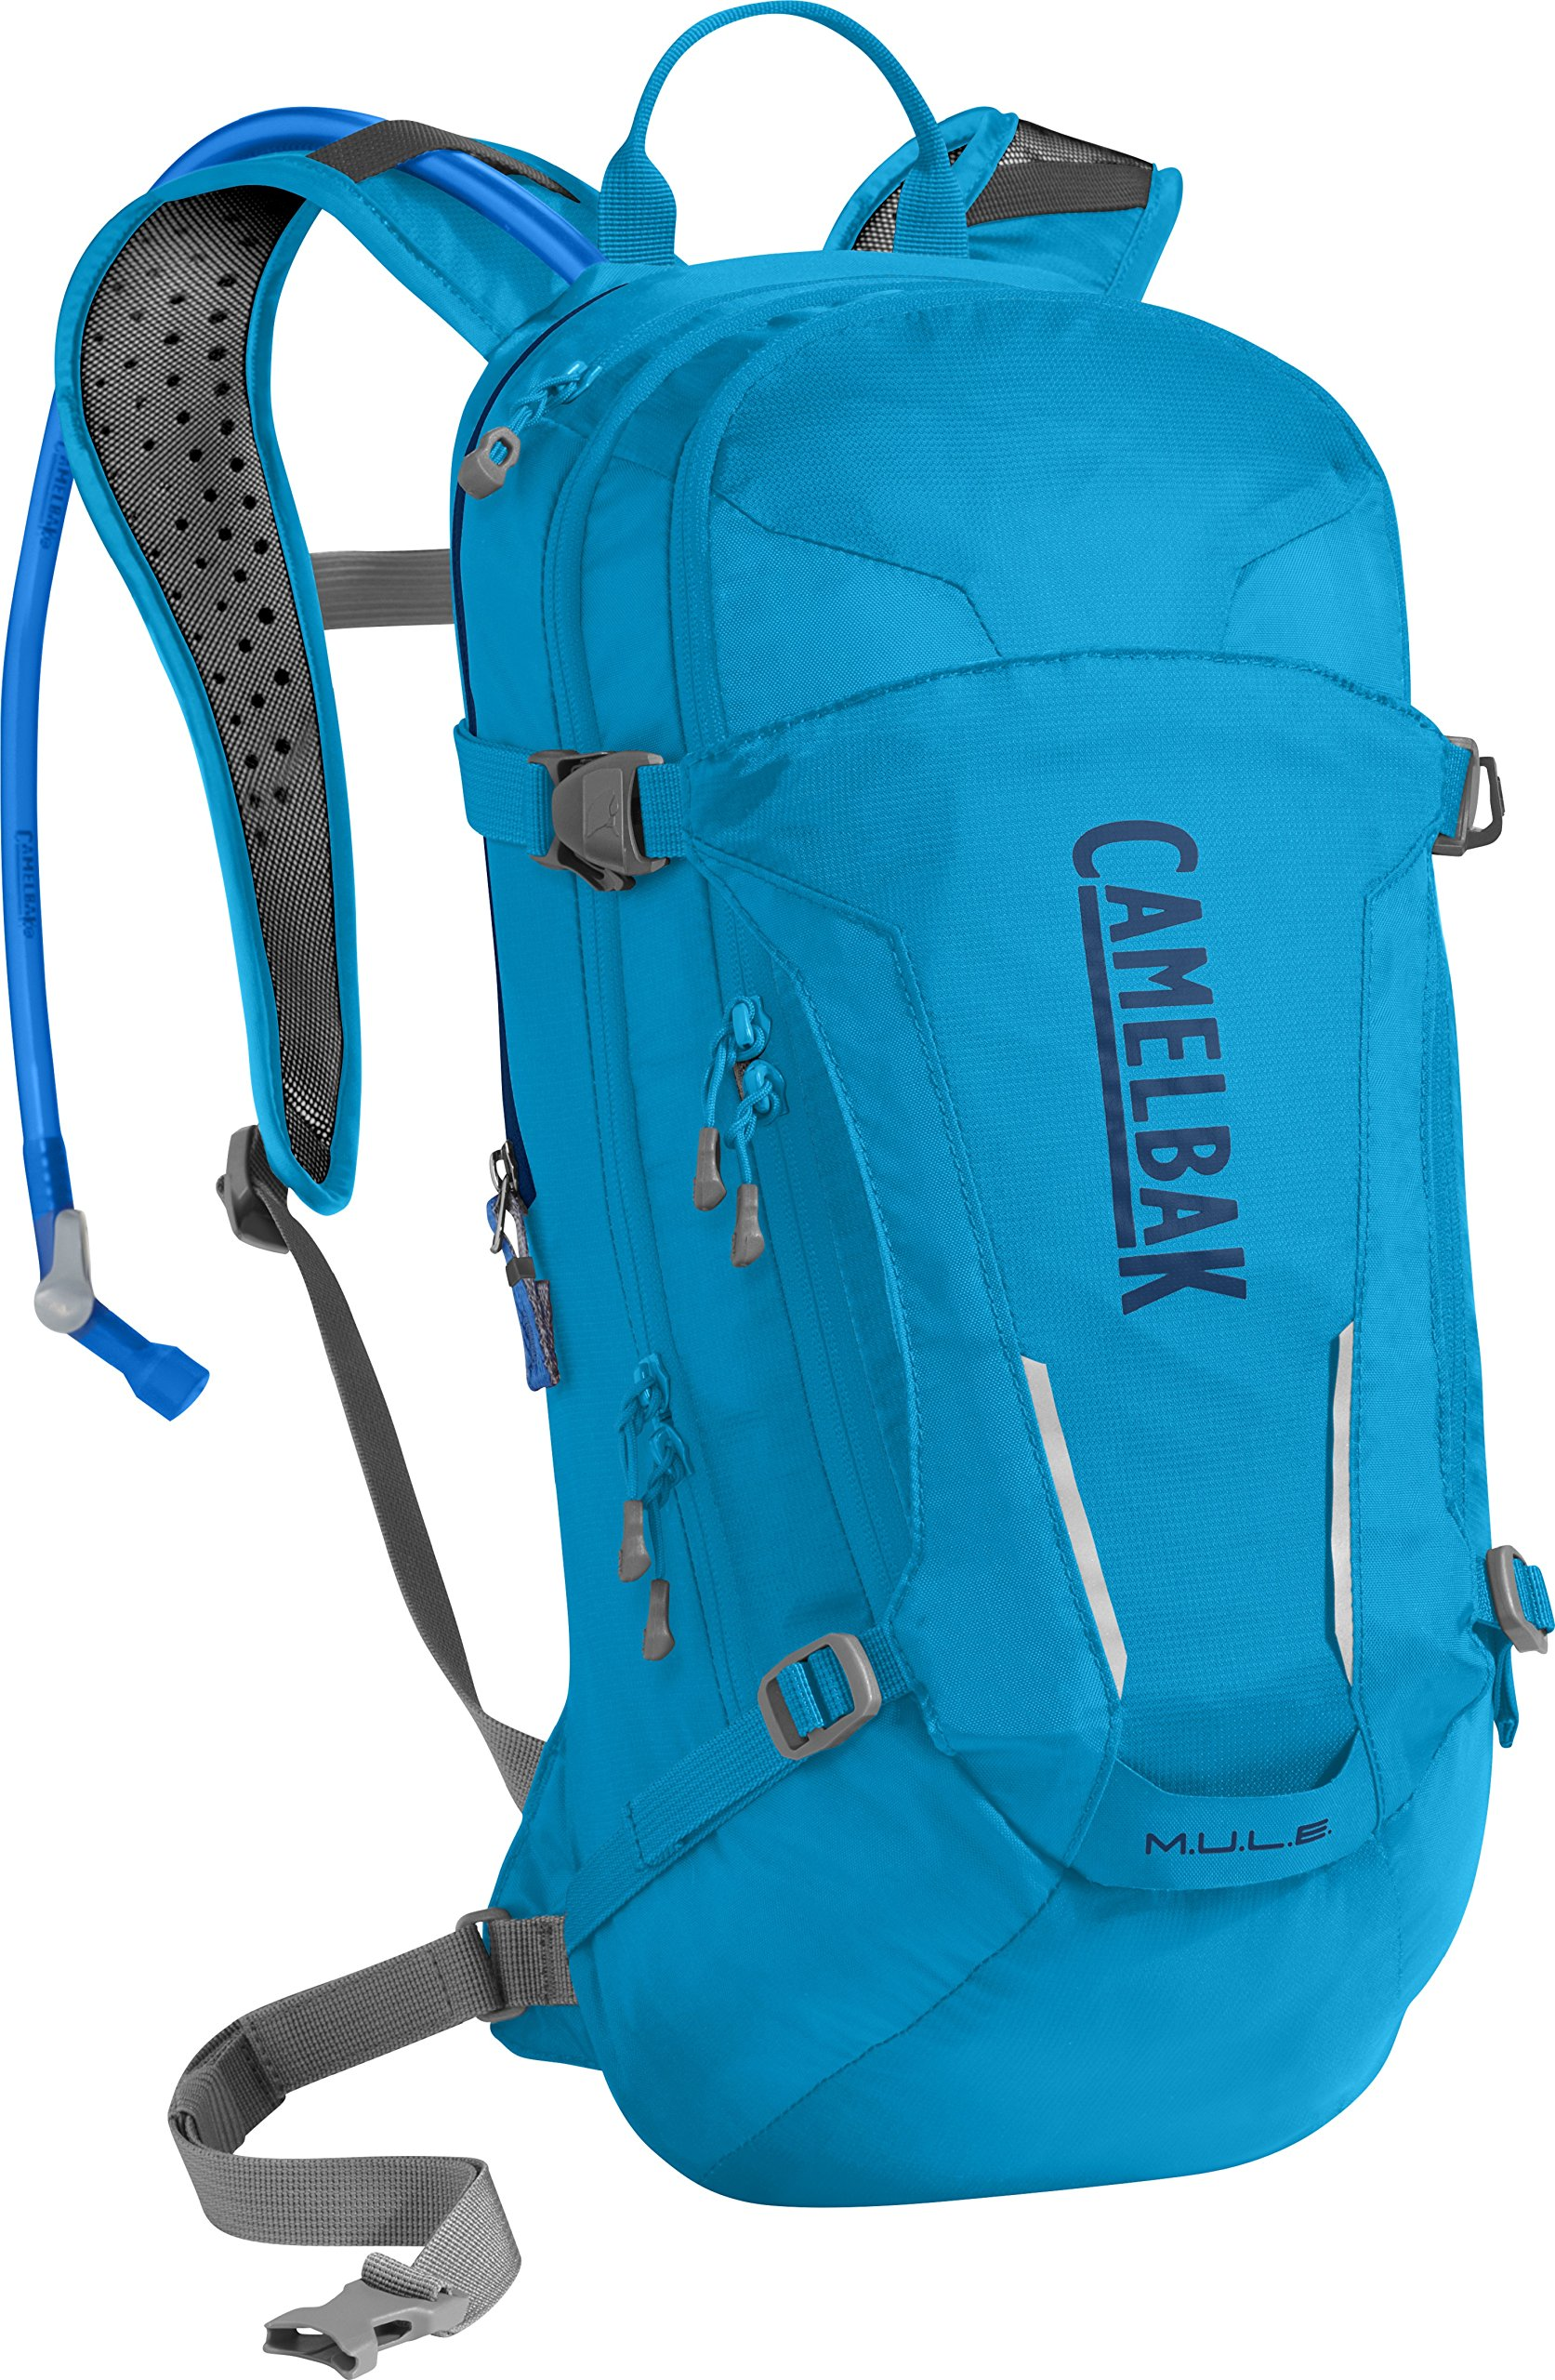 CamelBak M.U.L.E. Crux Reservoir Hydration Pack, Atomic Blue/Pitch Blue, 3 L/100 oz